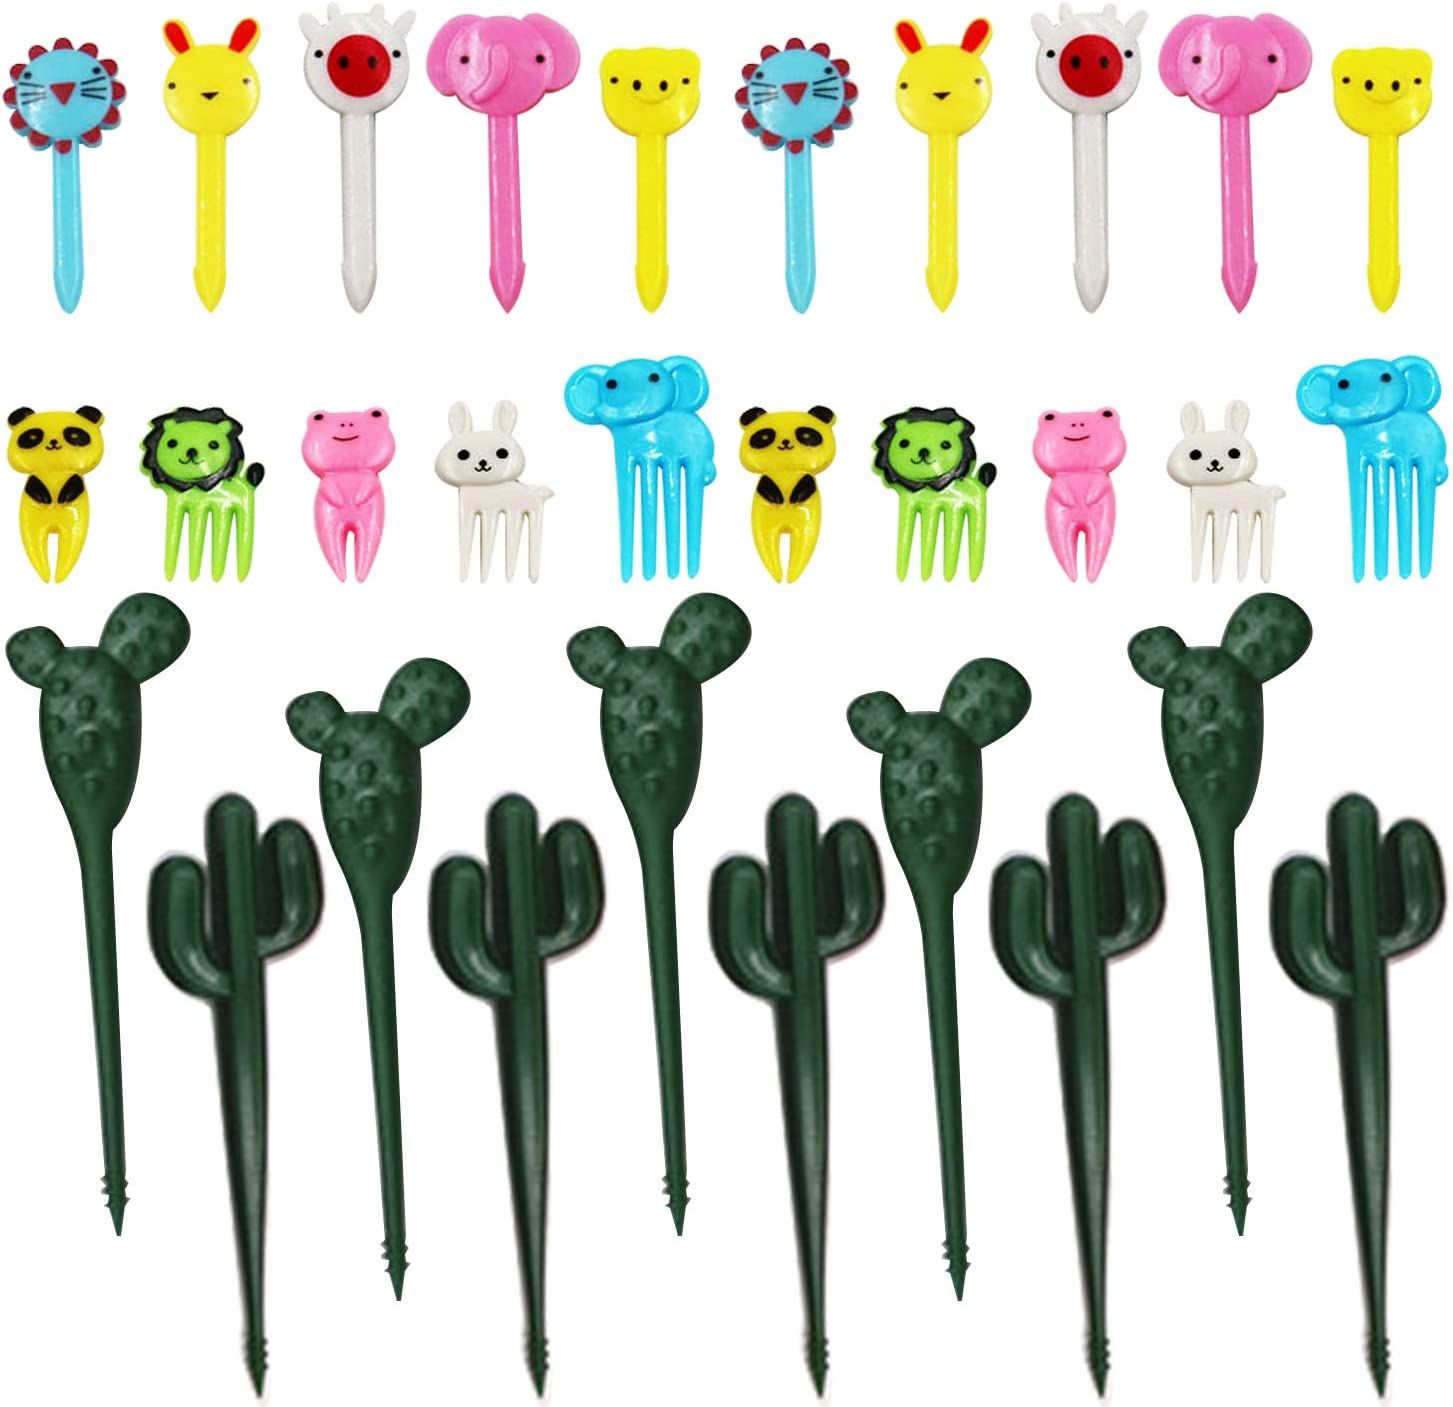 30Pcs Animal Fruit Food Picks BAP Free Bento Box Forks Picks Reusable Mini Cute Carton Animal Toothpicks for Kids Toddler Boys Lunchbox Cake Dessert Pastry Party Supply